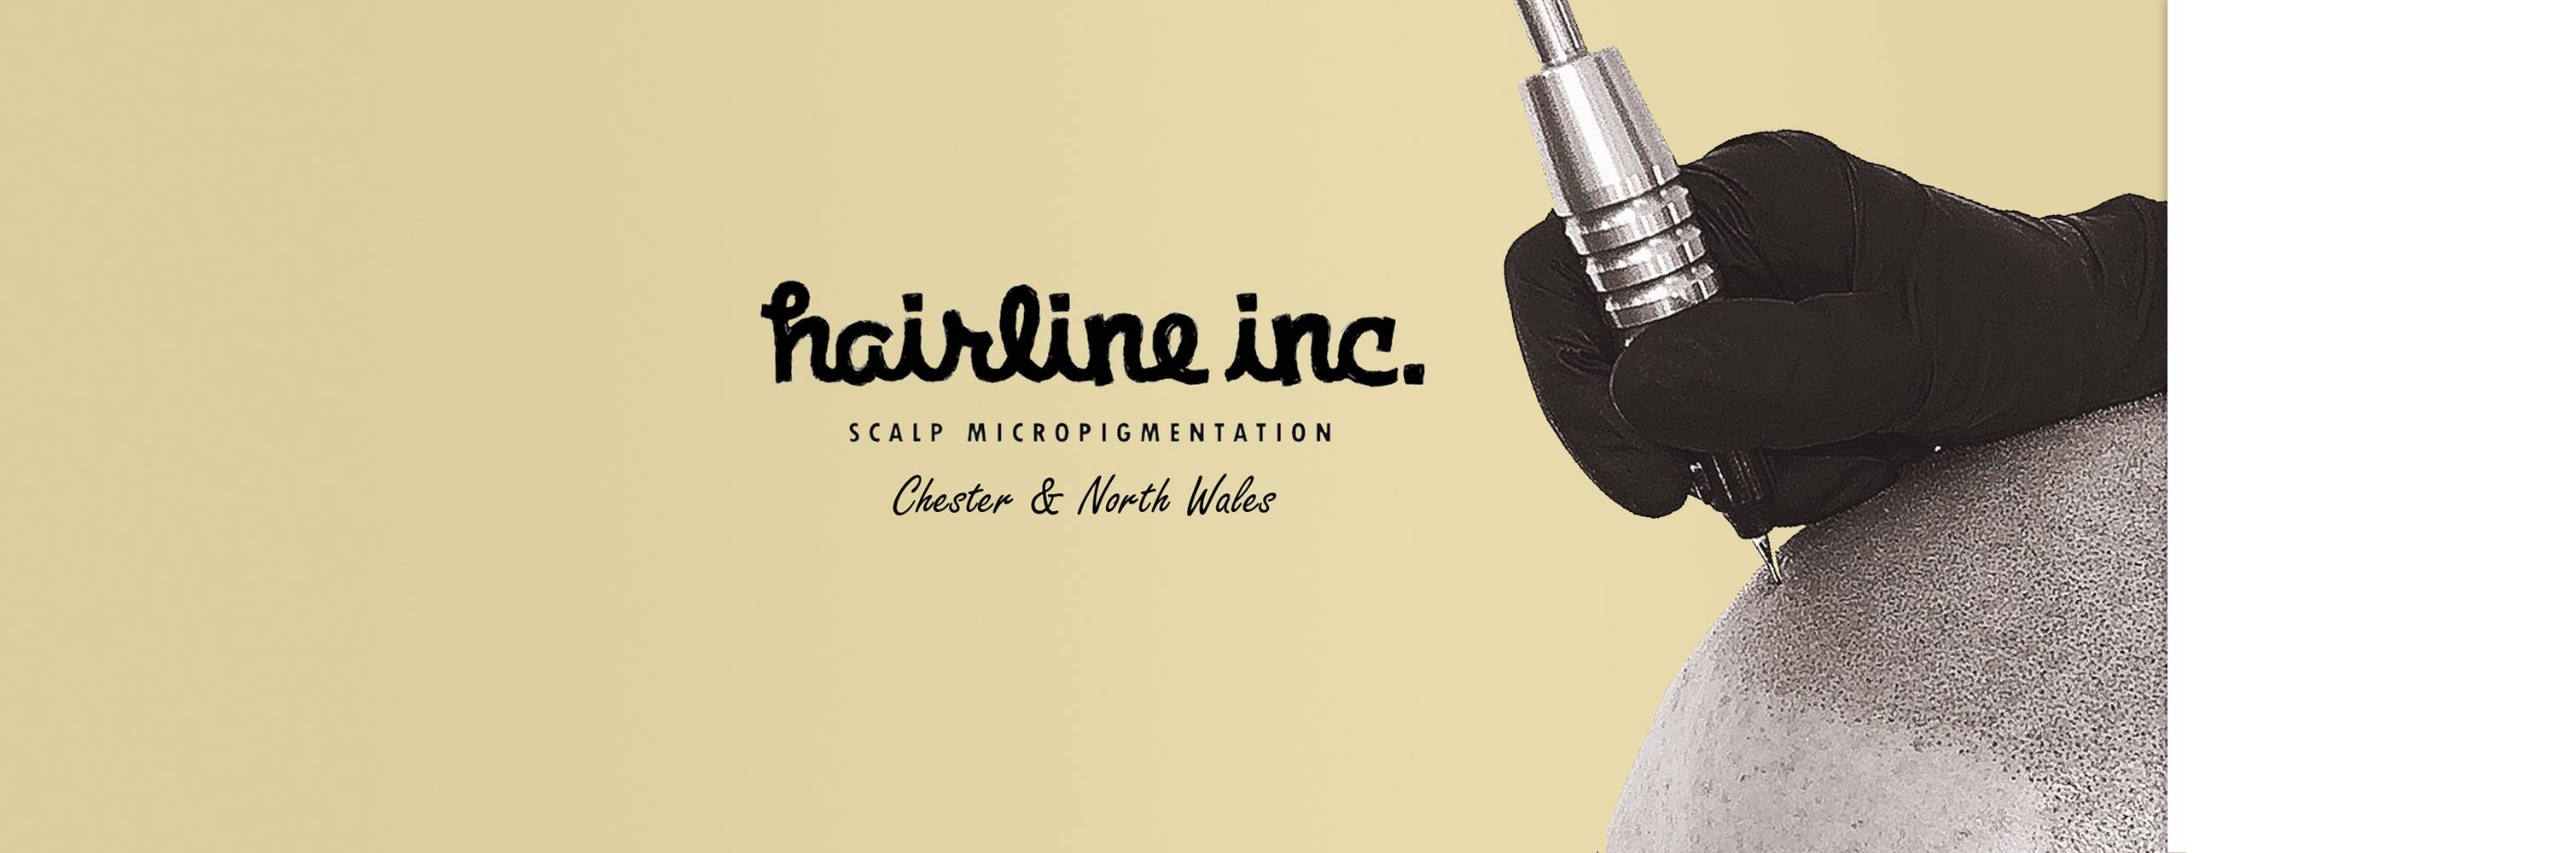 Hairline Inc Ltd. (@hairlineinc) Cover Image